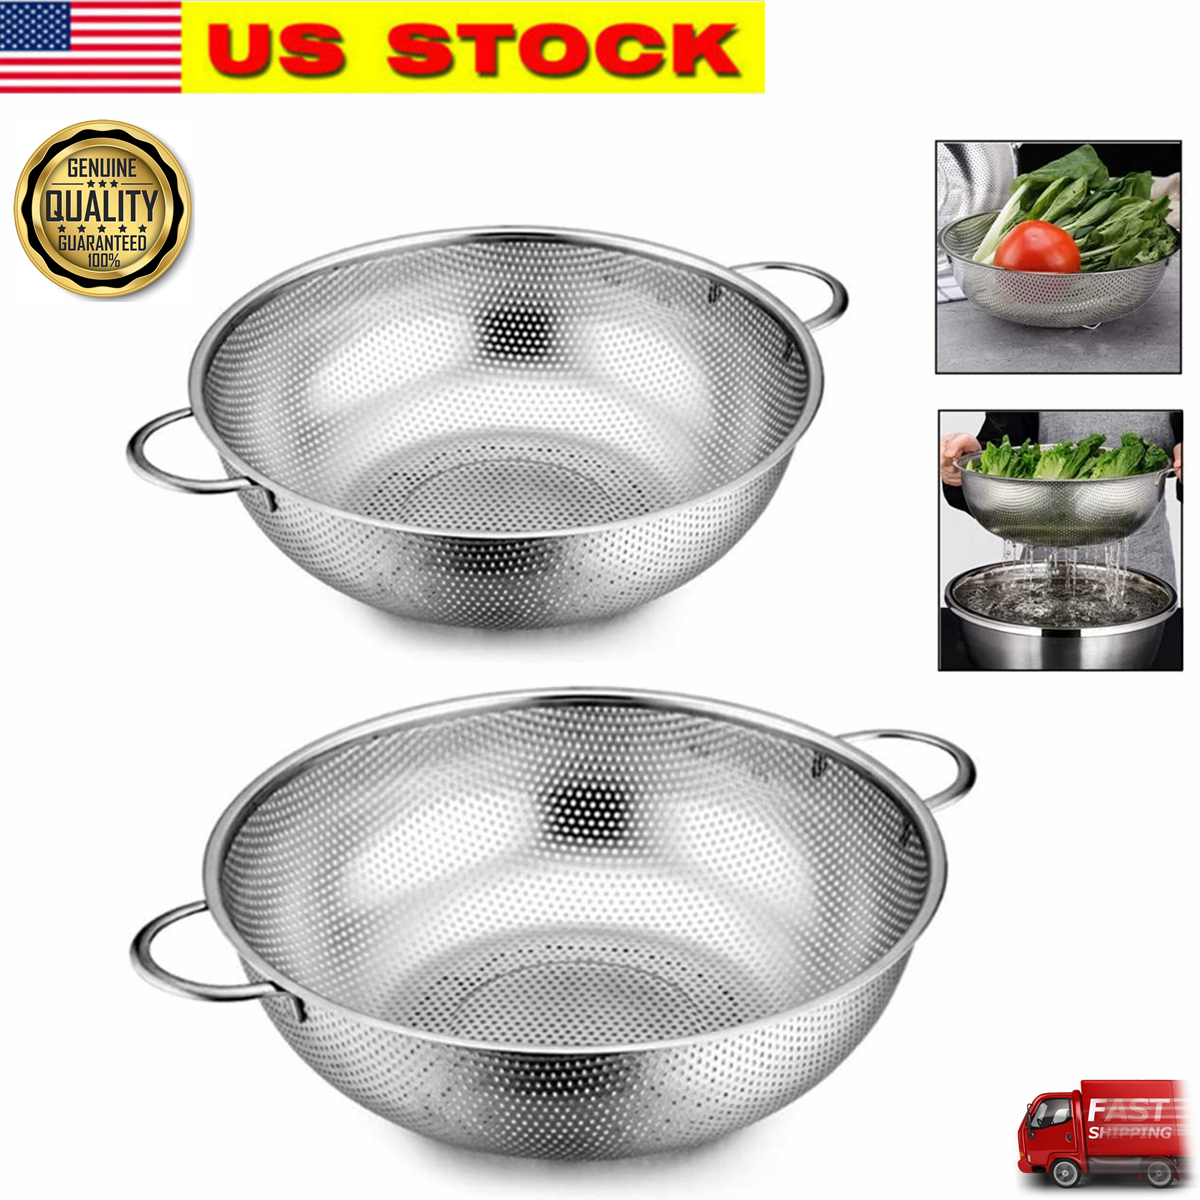 Cook Pro 2 Piece Stainless Steel Mesh Strainer Set For Sale Online Ebay